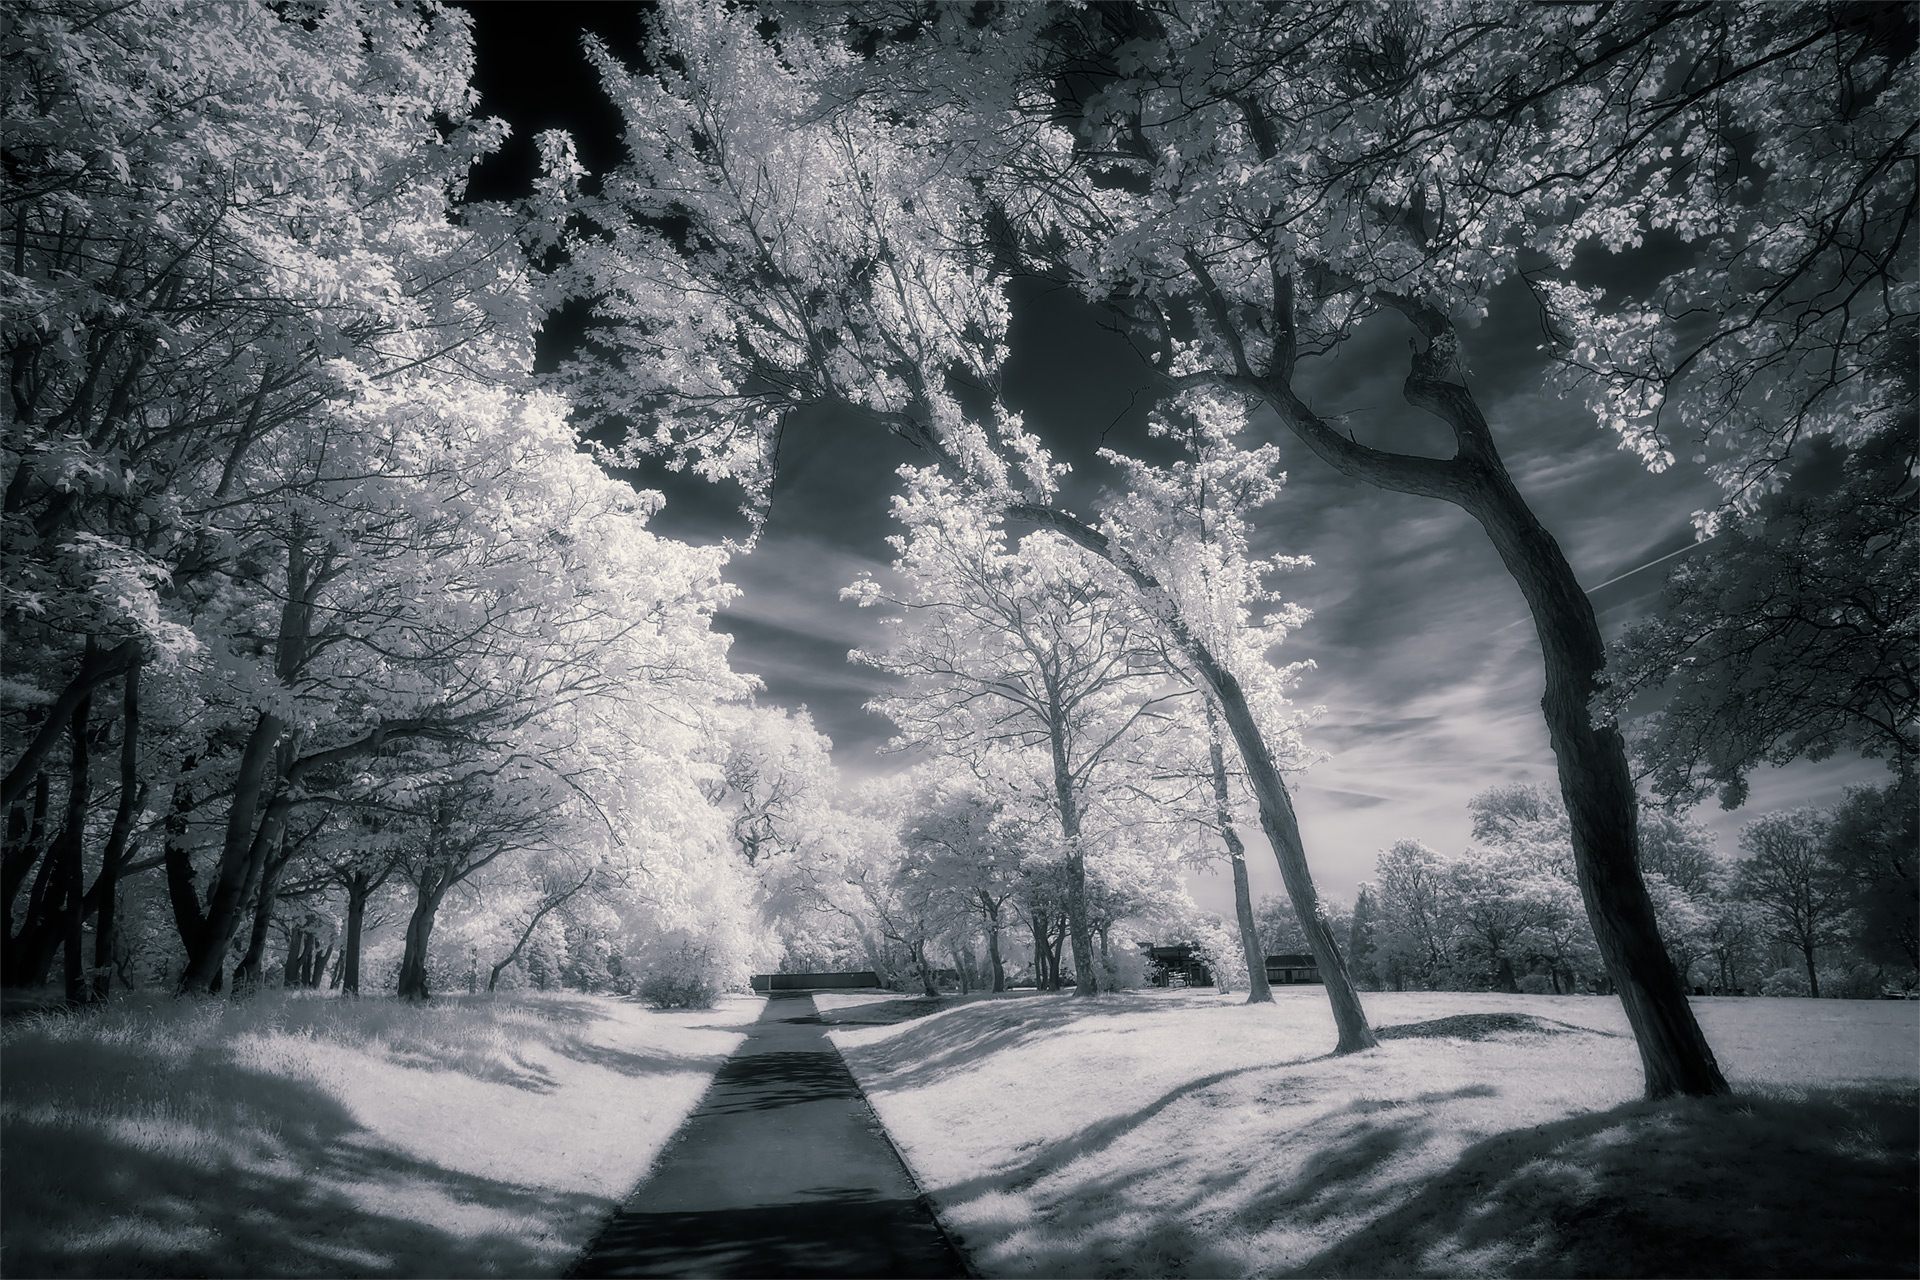 Stanley Park, May 2019 (IR) #2 / Stanley Park, Show the Original, Landscape Photography, Infrared, Fujinon XF 14mm f/2.8, Fujifilm X-E2, Blackpool [stanley park may 2019 2 f]